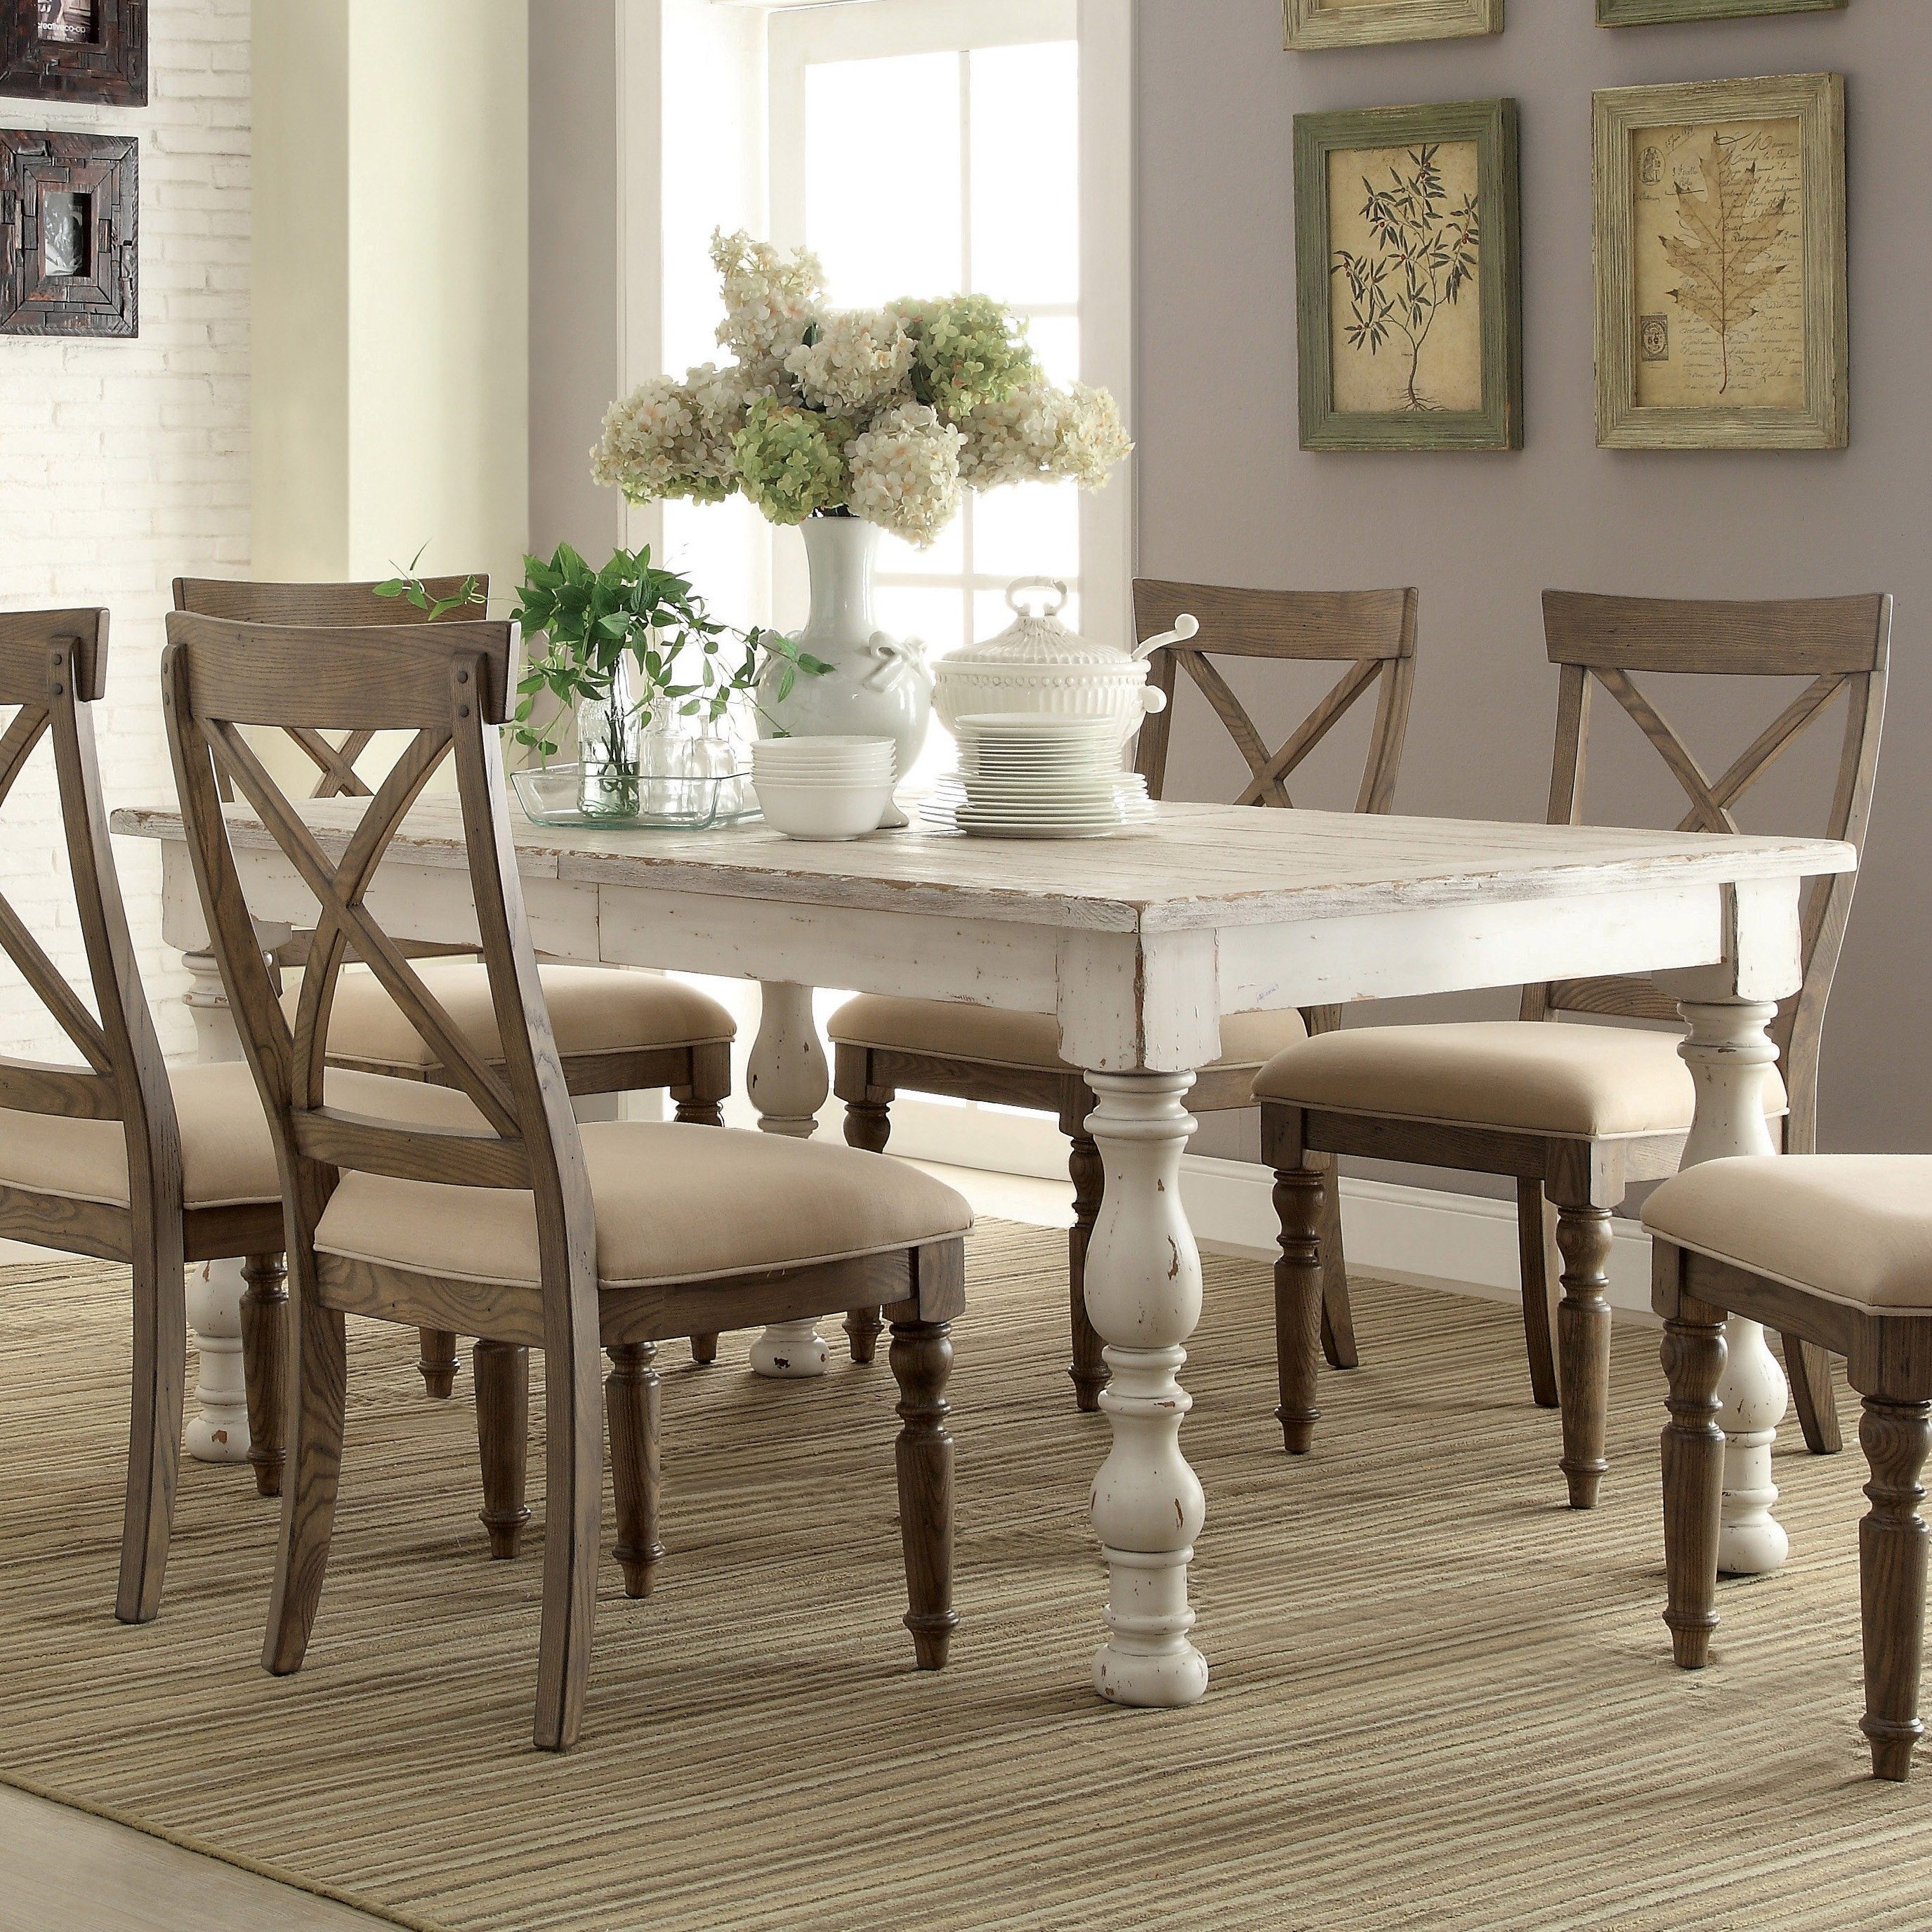 white dining table white dining rooms table and chairs dining sets solid oak extending dining table and chairs set chocolate funique